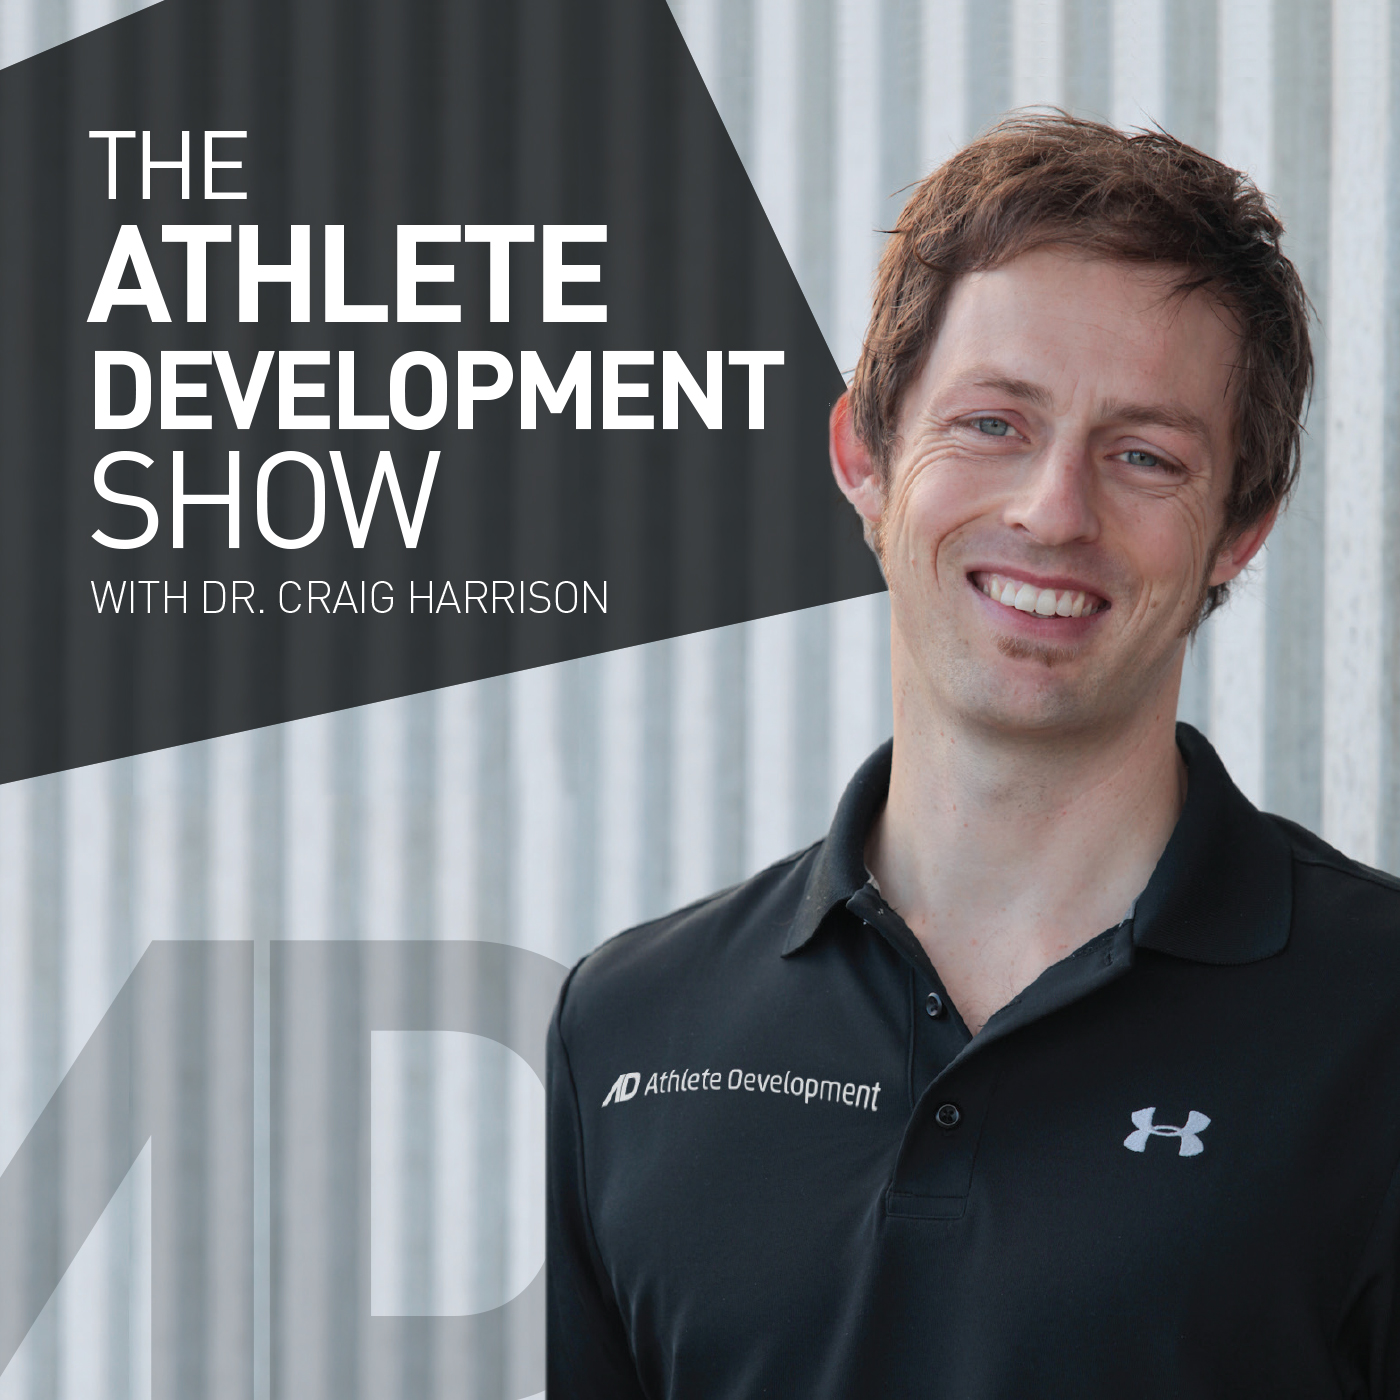 The Athlete Development Show